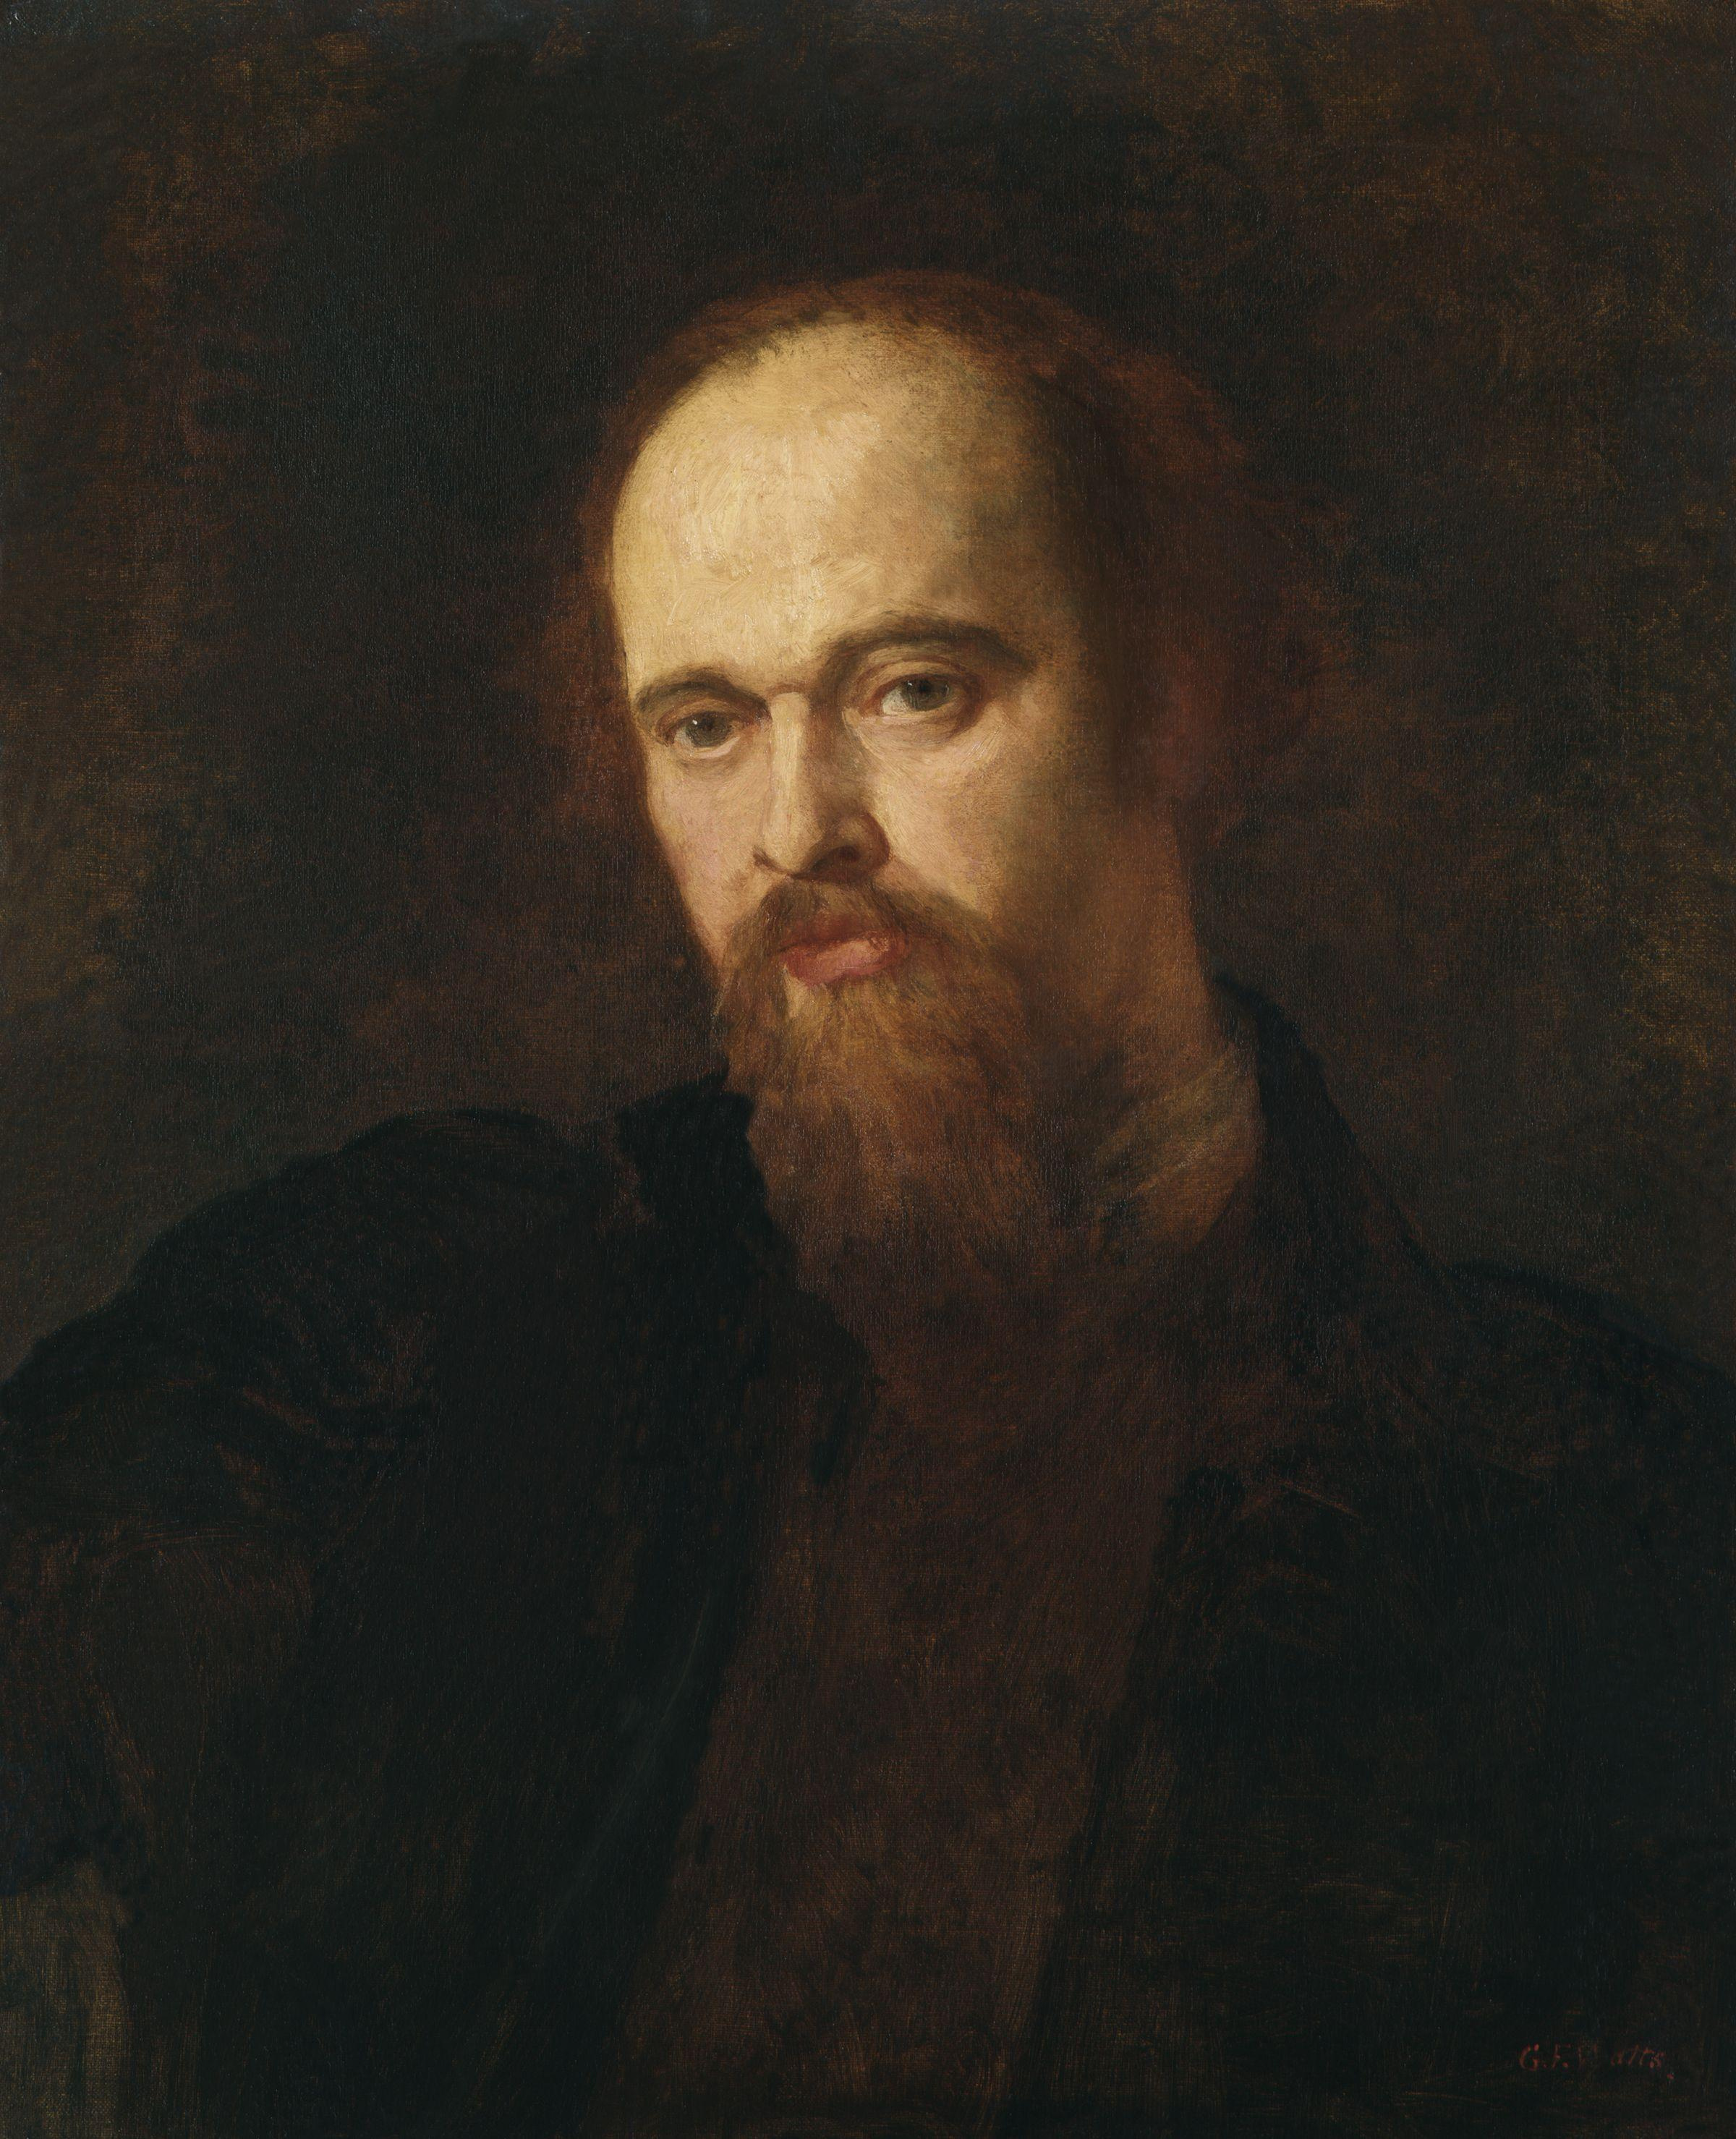 Image of Dante Gabriel Rossetti from Wikidata